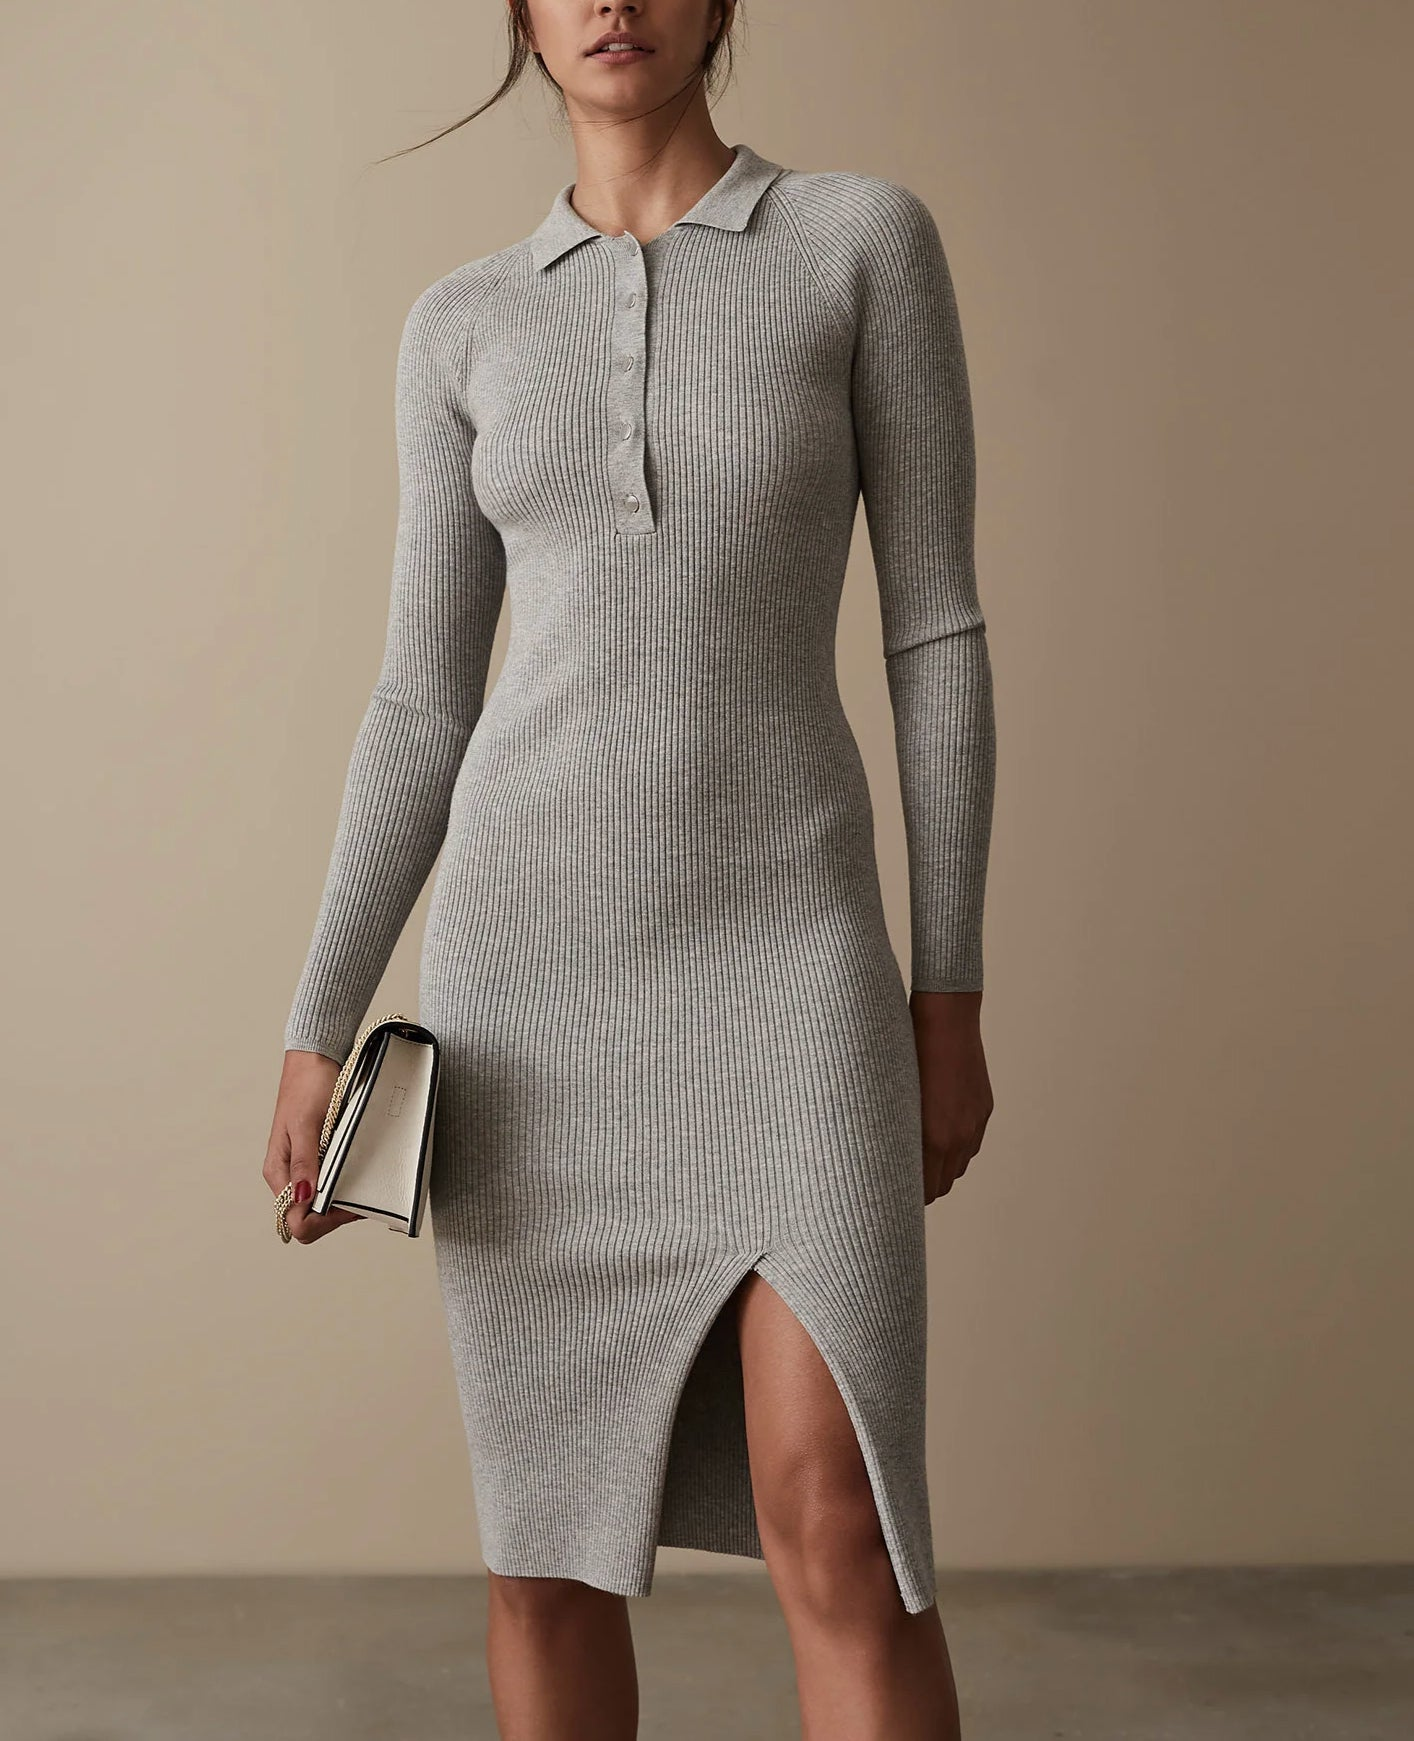 Louise - Grey knitted stretch dress with collar